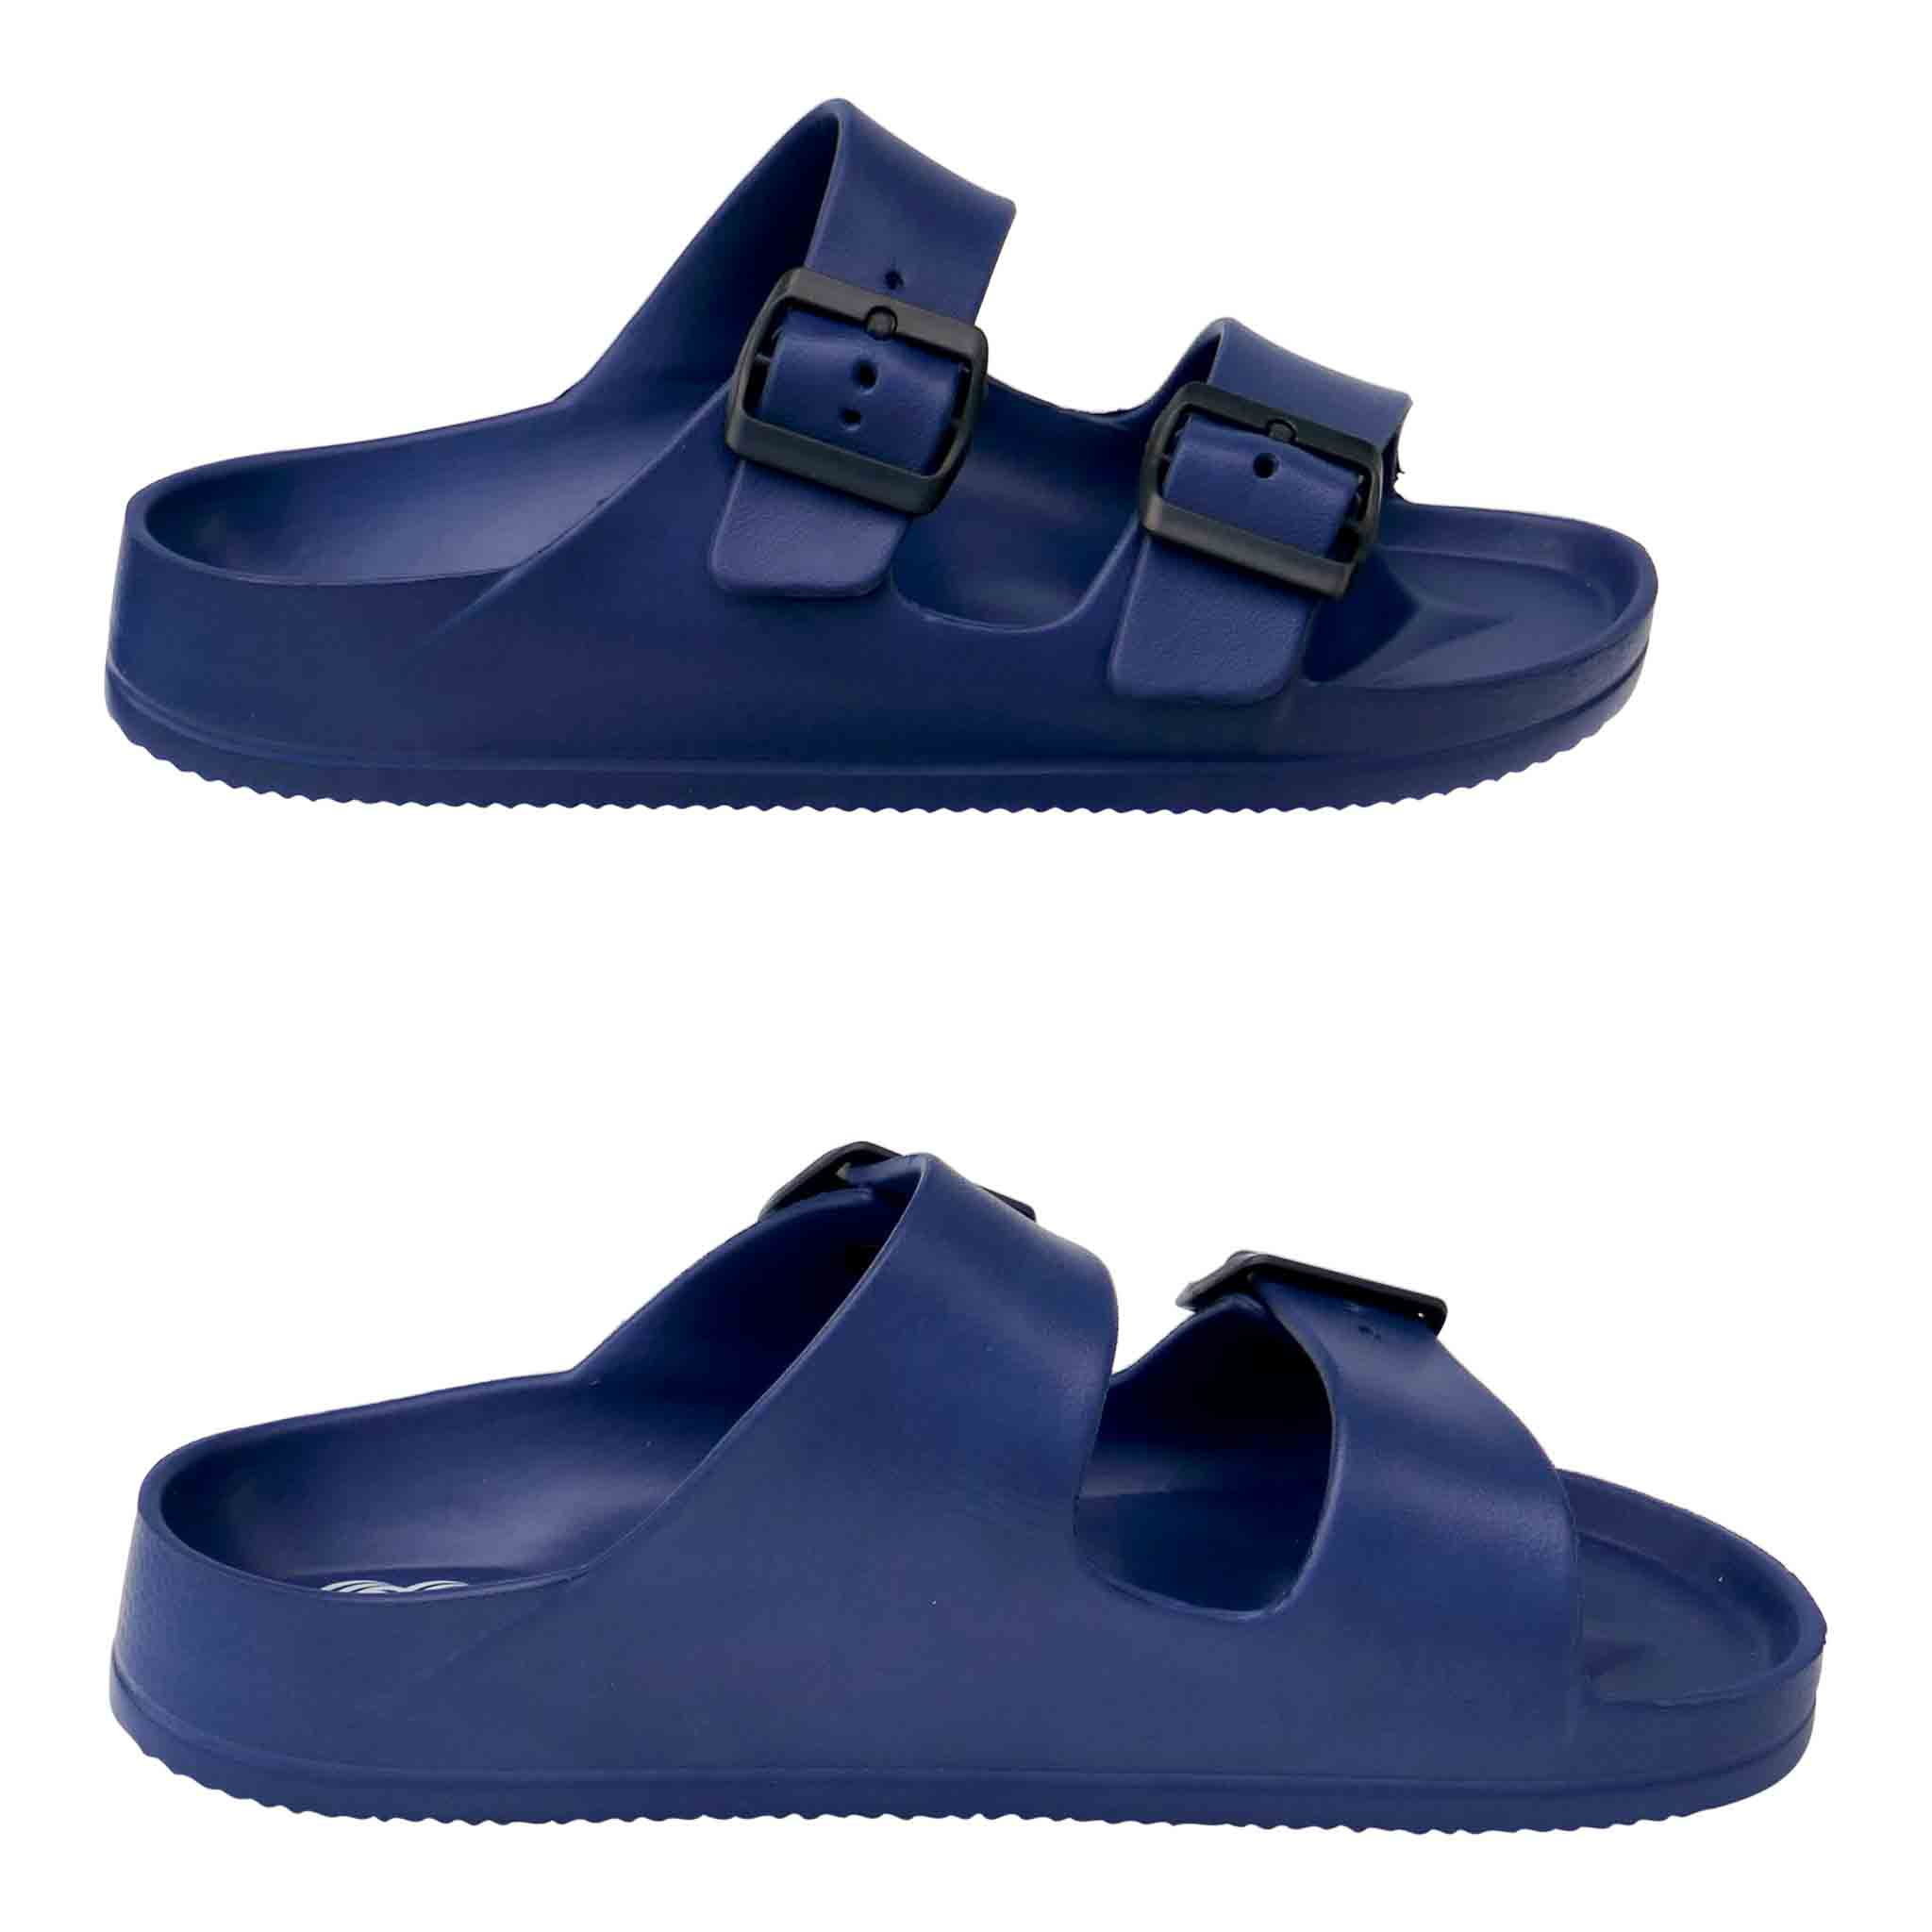 LADIES' ORTHOTIC BEACH SANDAL WITH ARCH SUPPORT (NAVY BLUE)